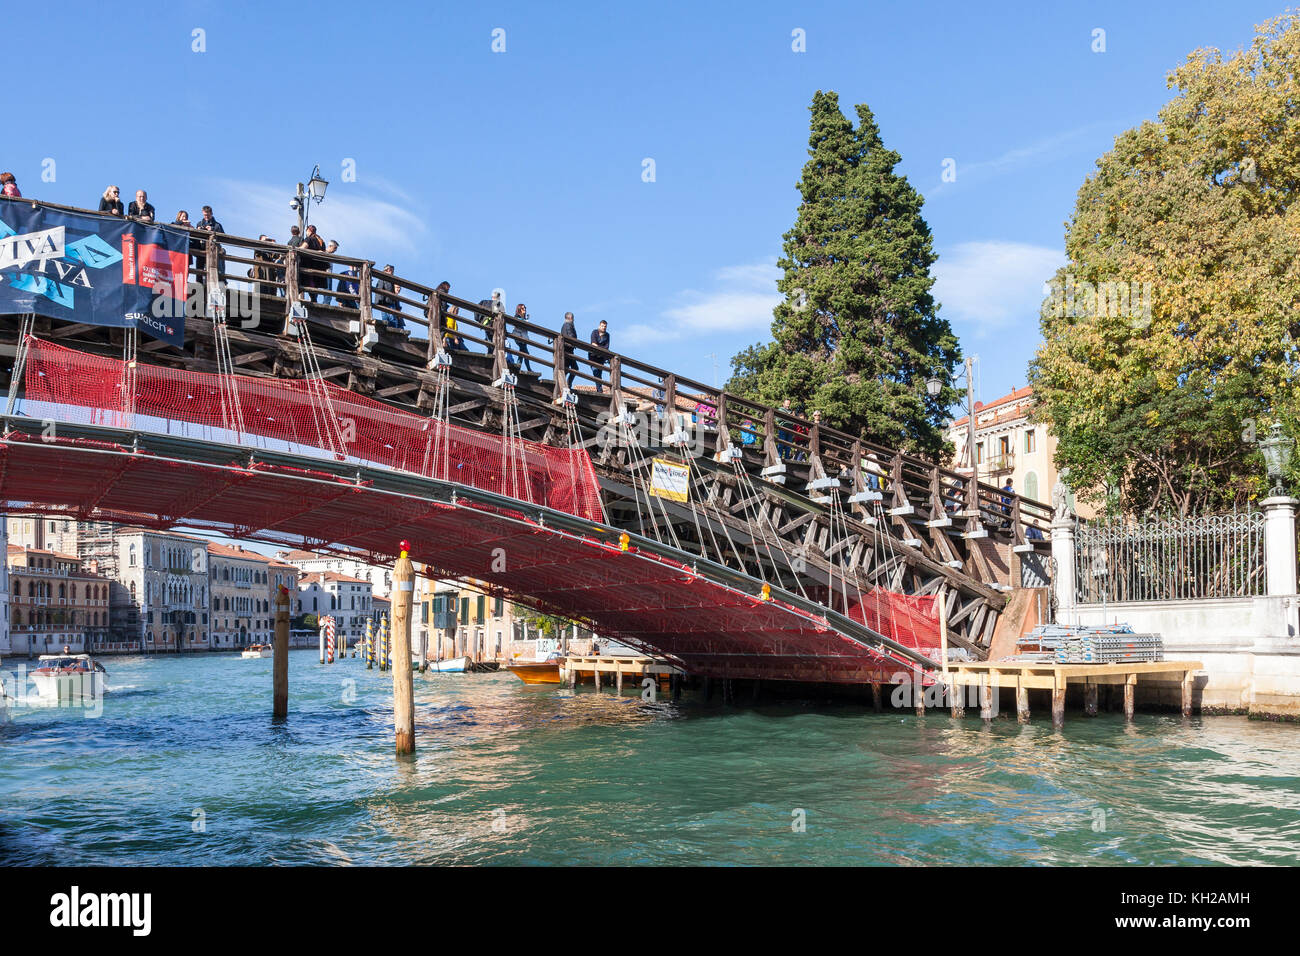 Restoration work being carried out on the Accademia Bridge, Grand Canal, Venice, Veneto, Italy funded by the eye - Stock Image